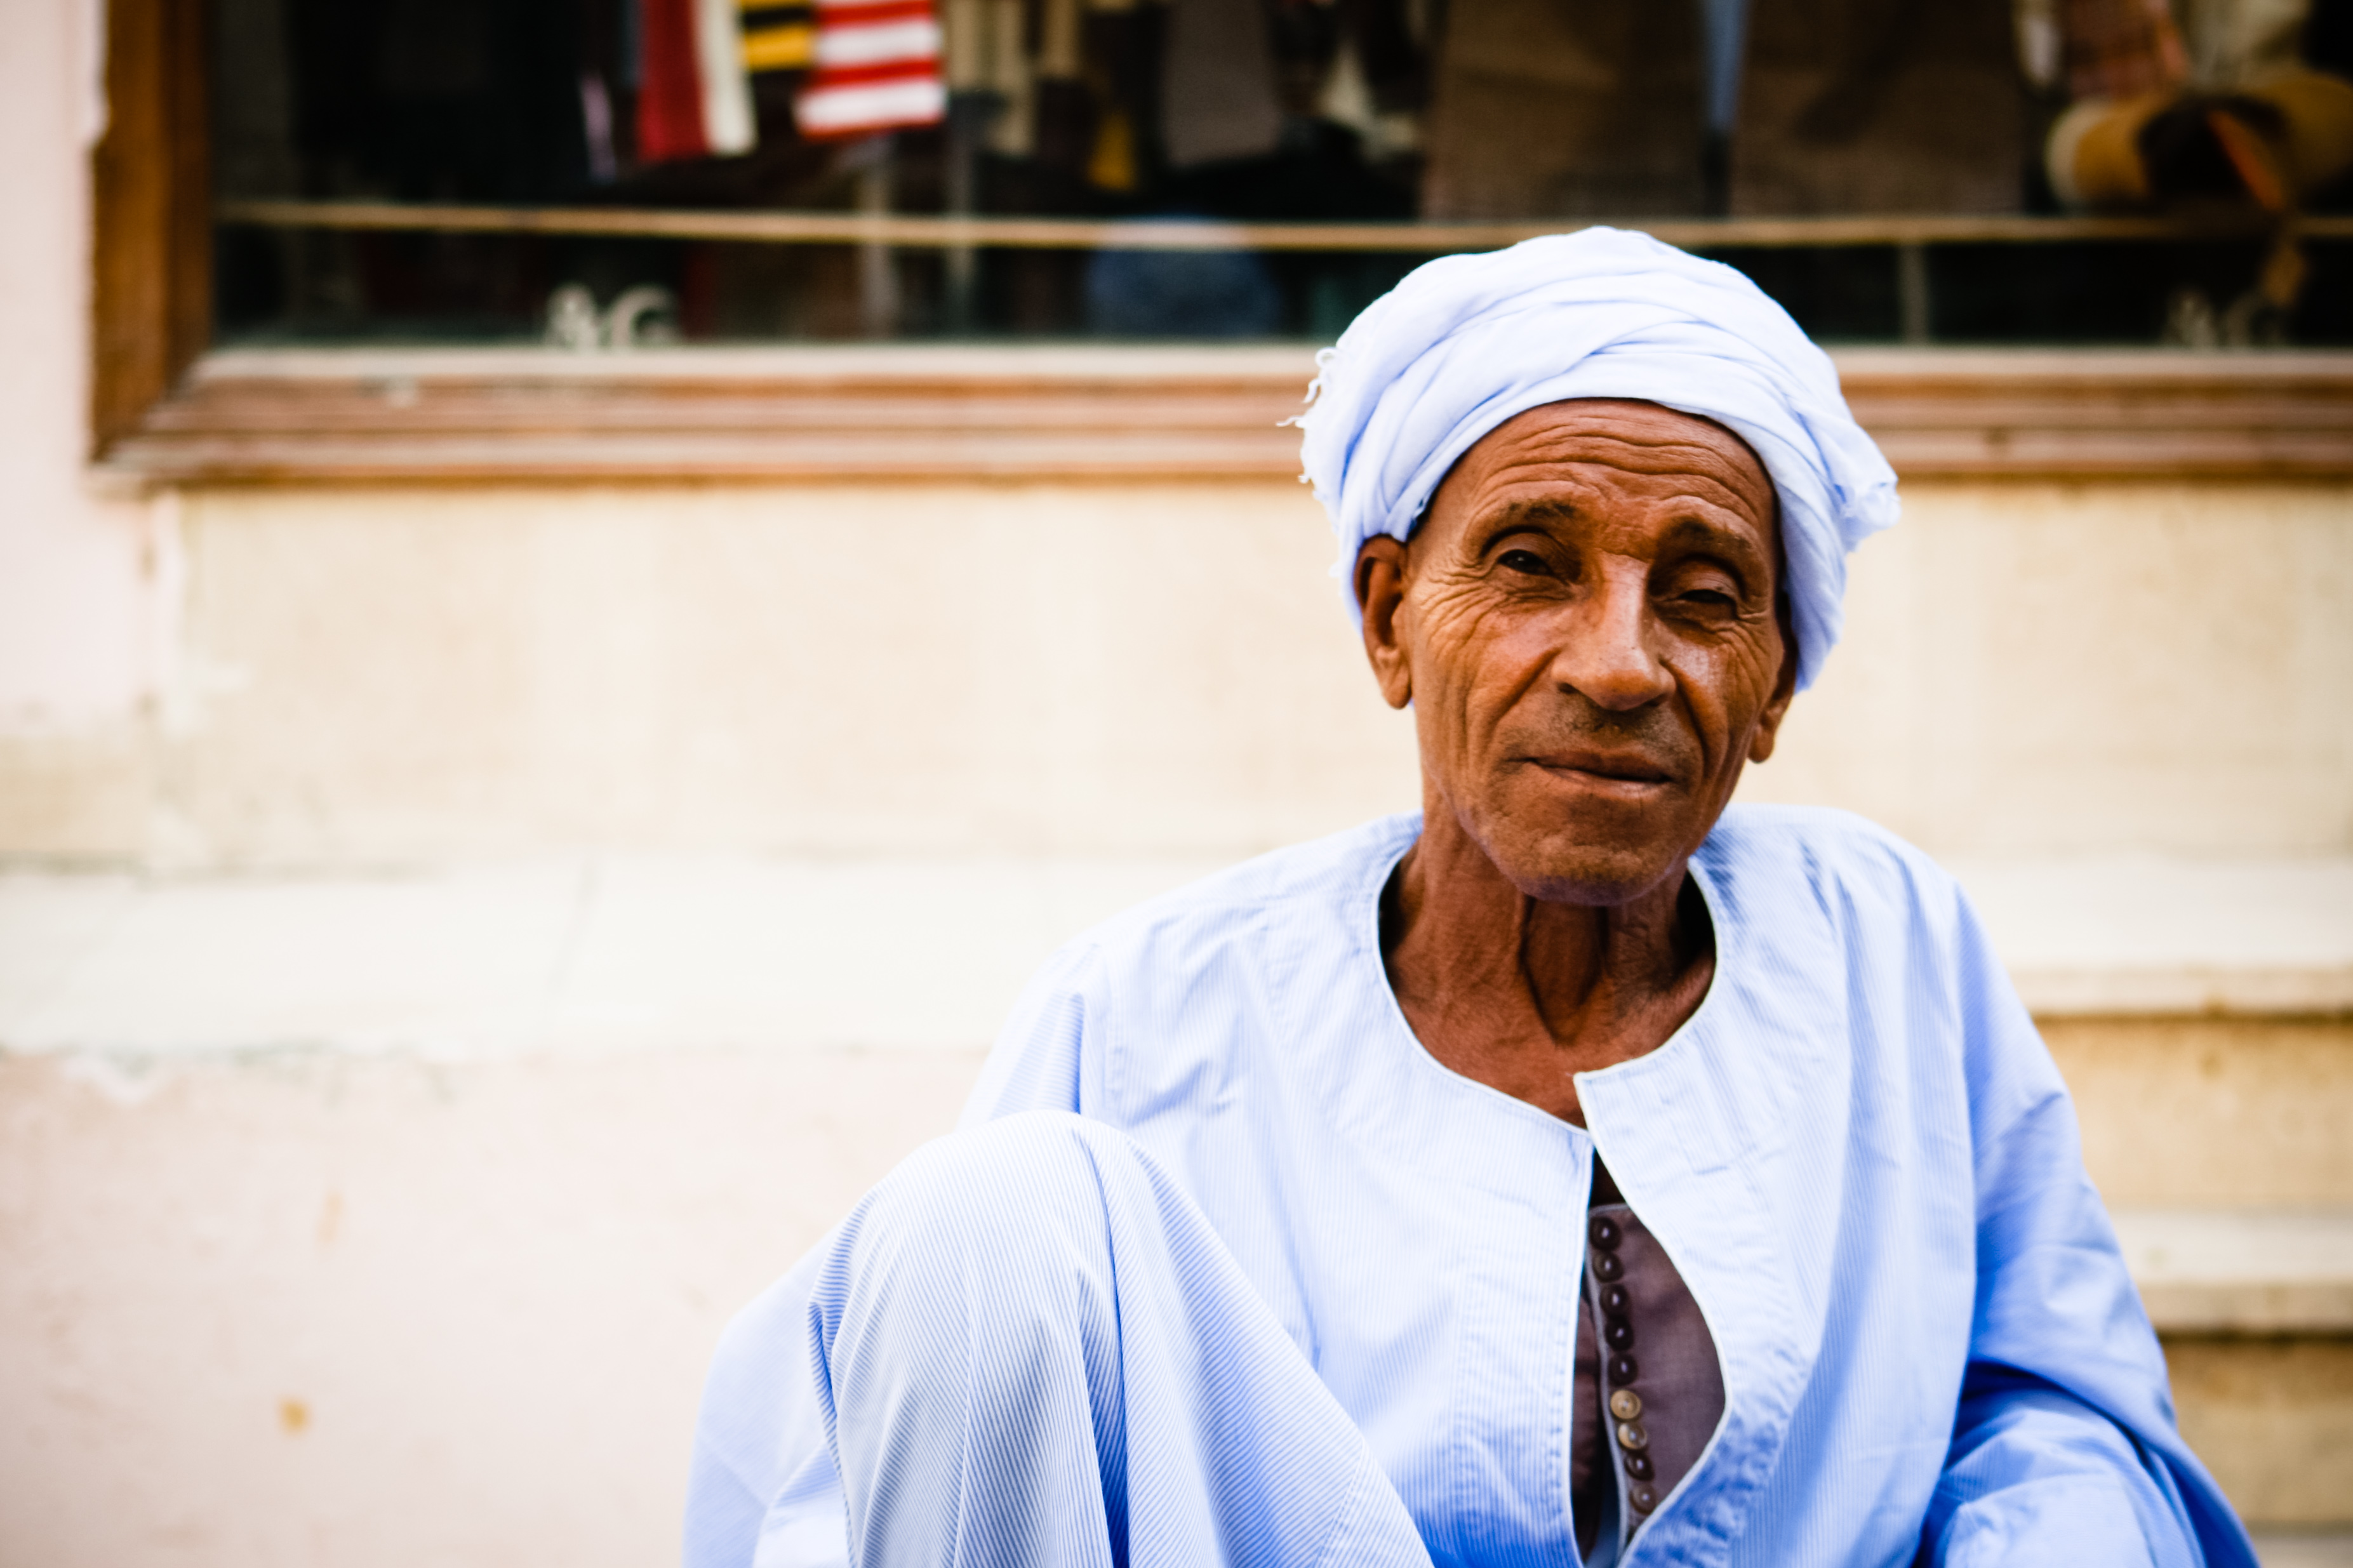 Arabic old man, Age, Morocco, Sitting, Scarf, HQ Photo